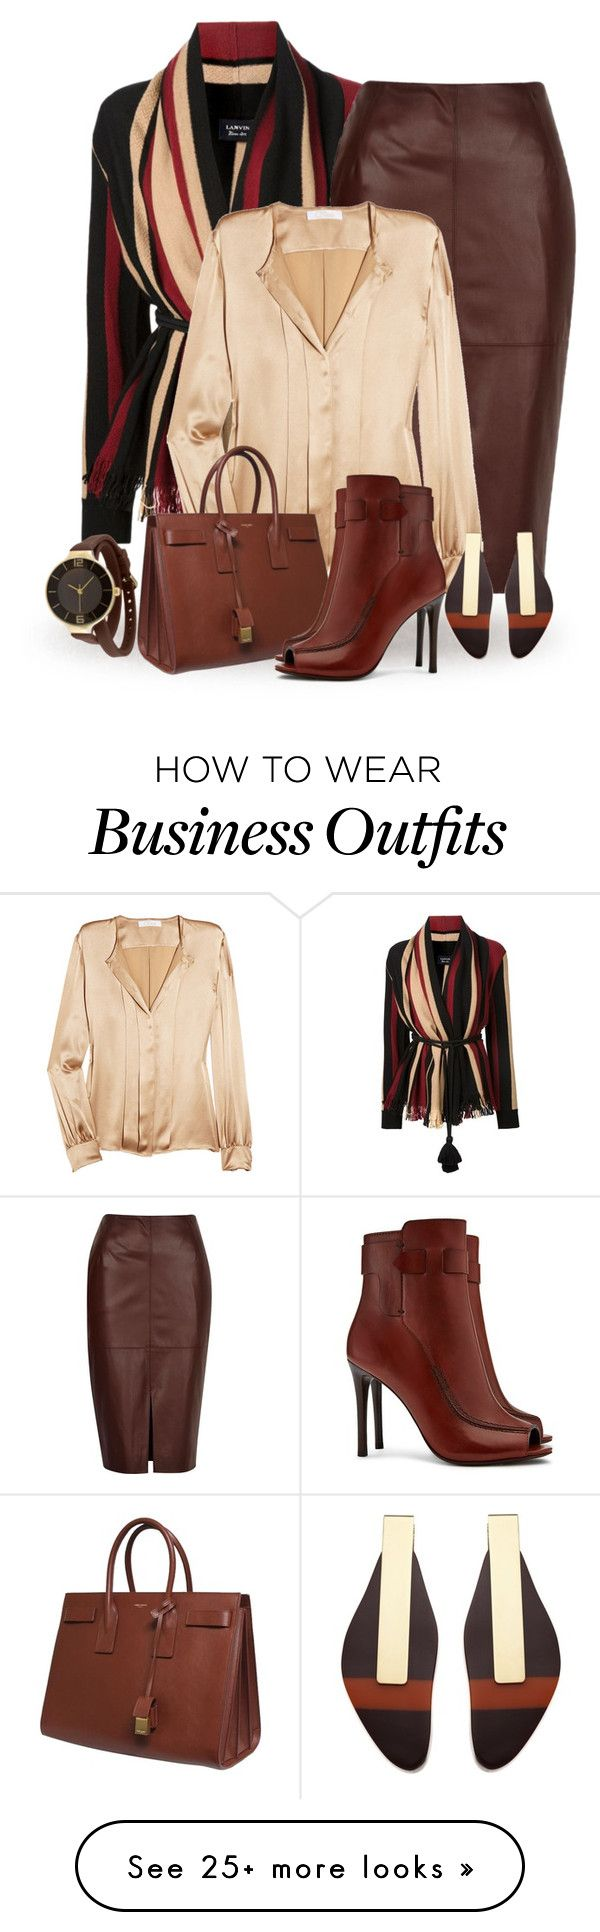 """Fall Office"" by terry-tlc on Polyvore featuring Lanvin, River Island, Chloé, Yves Saint Laurent, Tory Burch, Marni and TKO Orlogi"